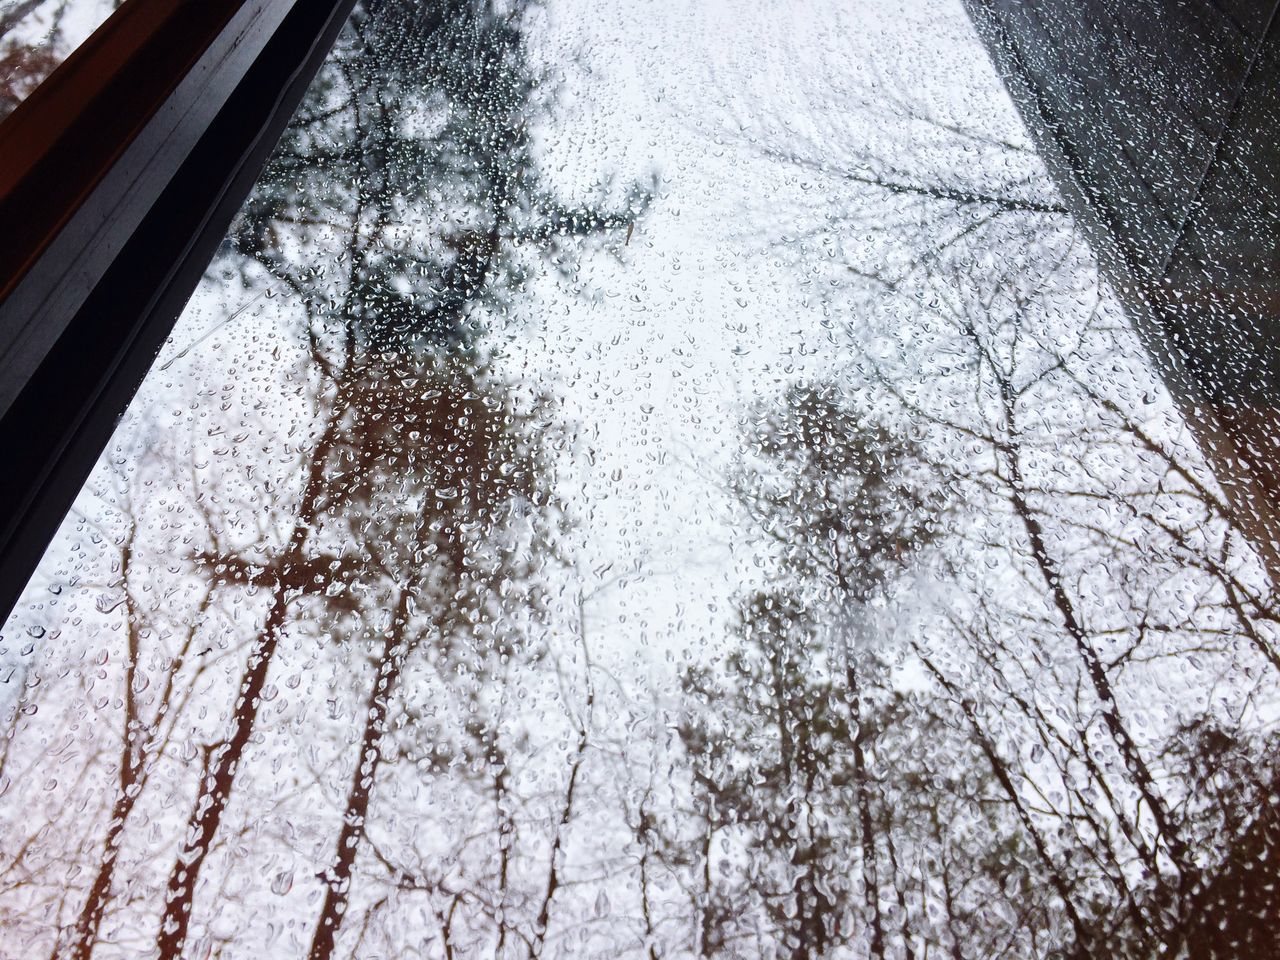 snow, tree, winter, cold temperature, day, no people, low angle view, nature, outdoors, beauty in nature, close-up, freshness